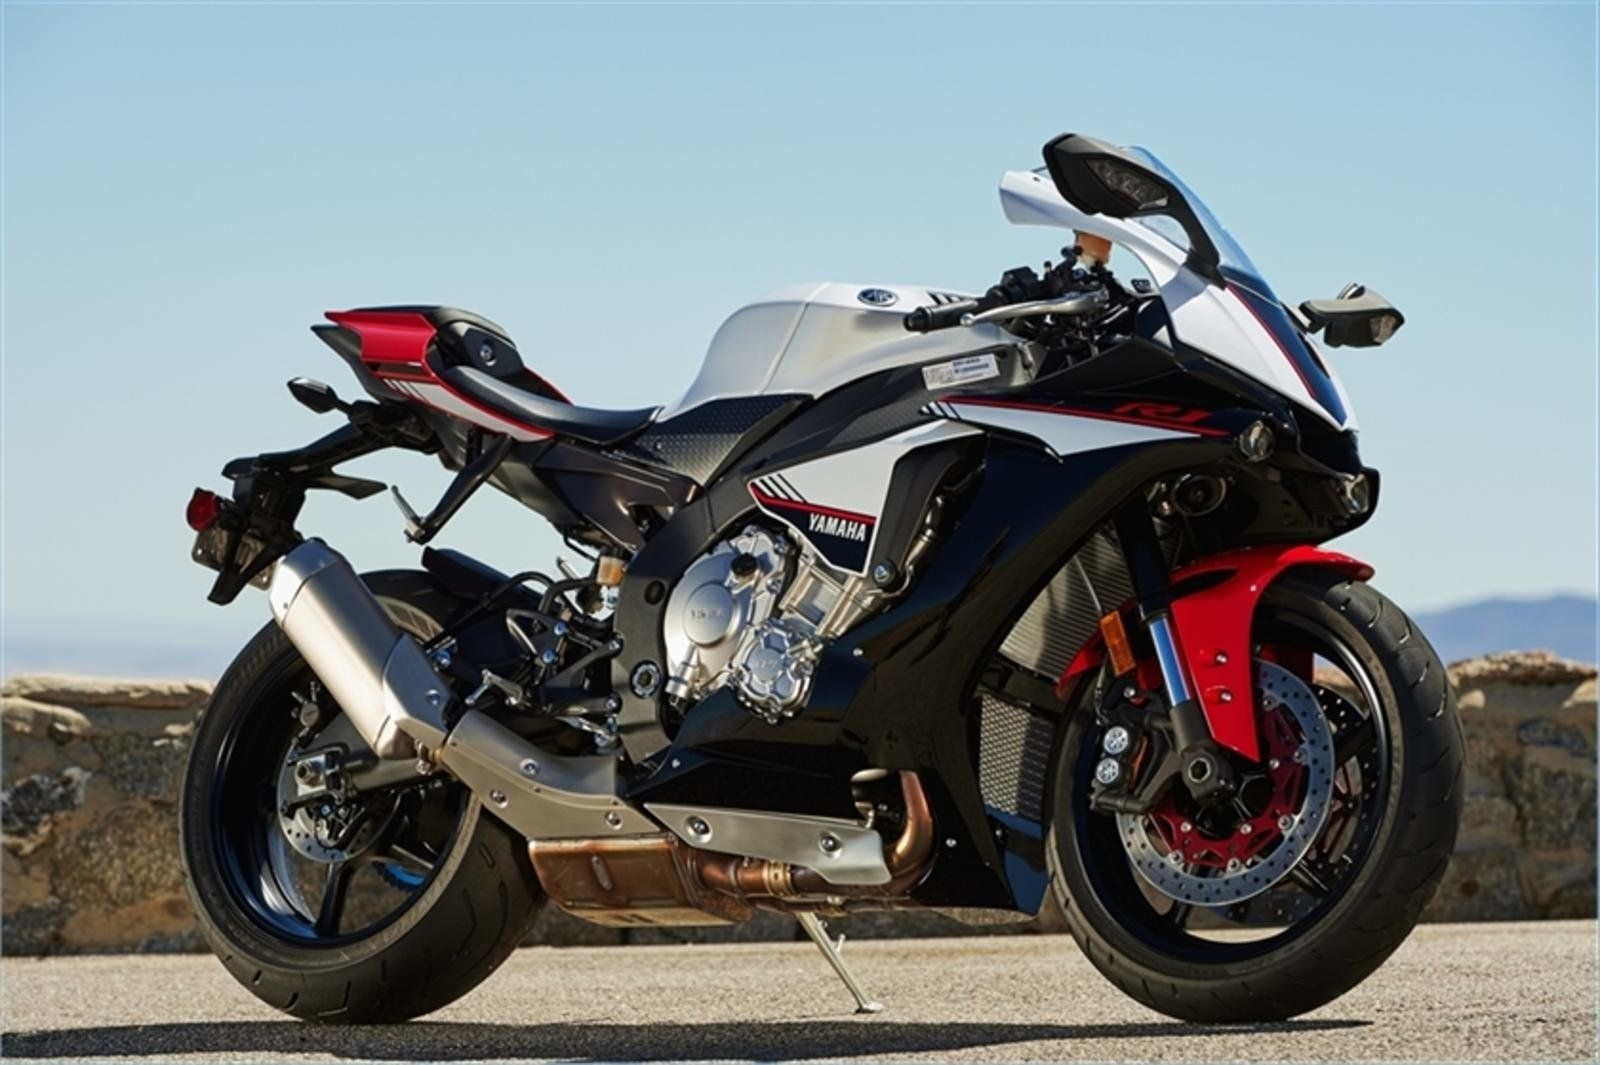 2019 R1 Yamaha Rumors From 2019 Yamaha Yzf R1s Topspeed With